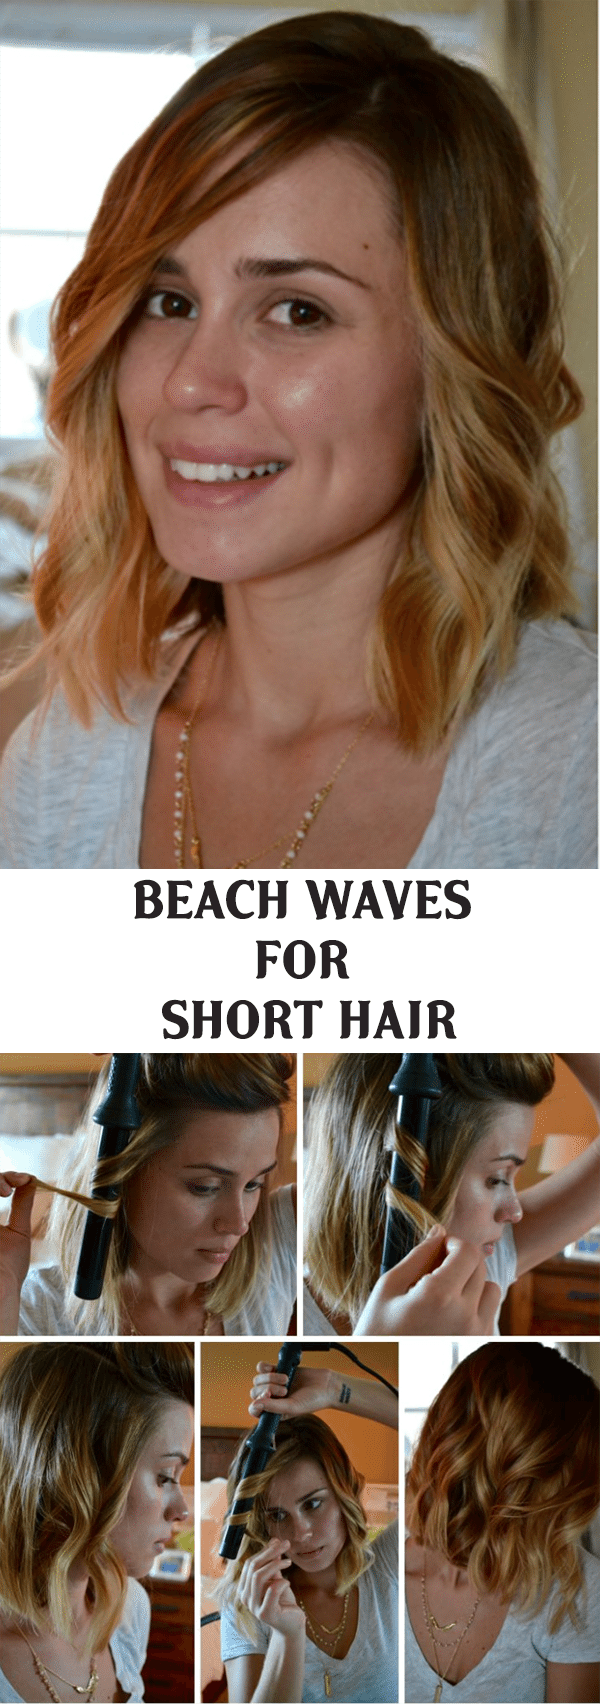 BEACH WAVES HAIRSTYLE FOR SHORT HAIR